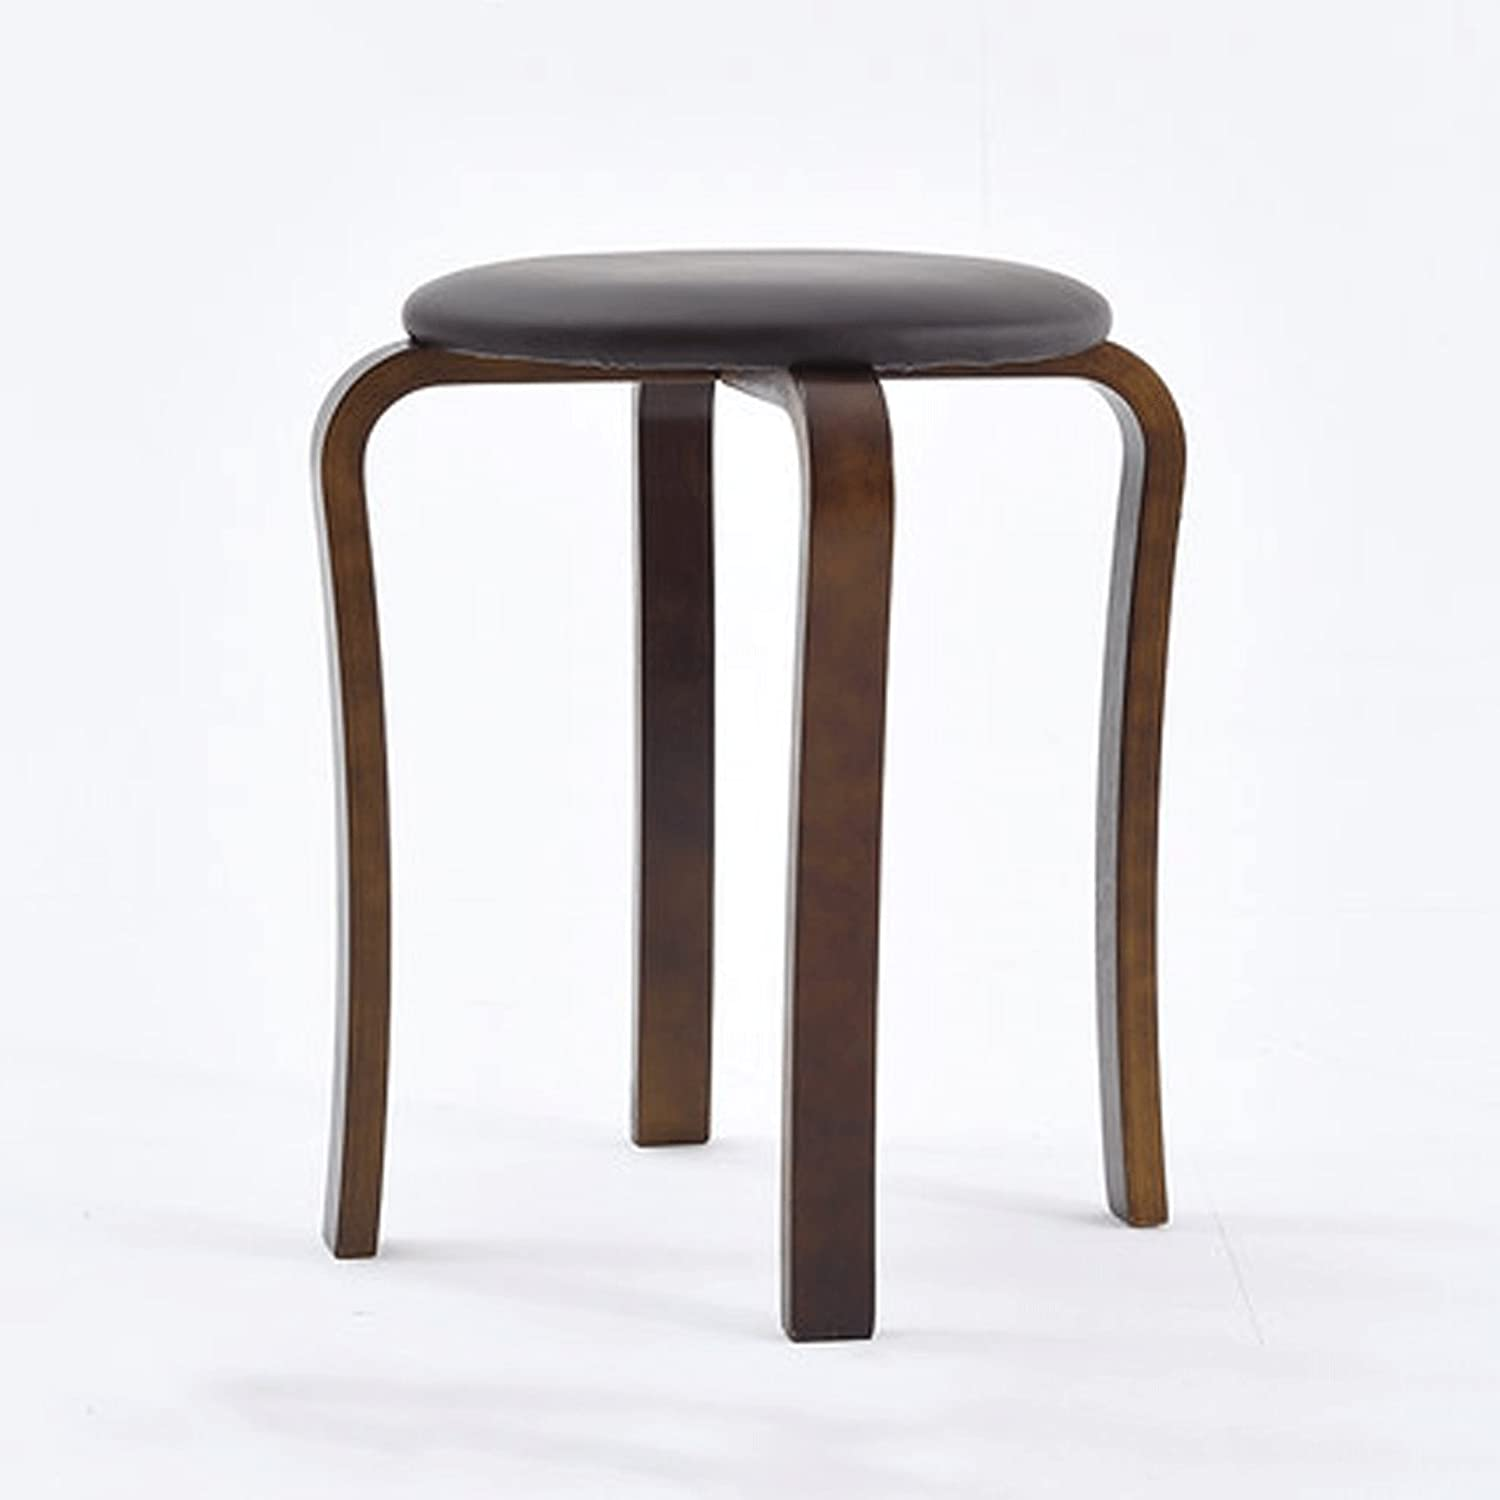 Simple Round Chair Dining Chair Solid Wood Home high Stool Adult Table Simple Stool Fashion Creative Small Bench Modern Restaurant (color   A)